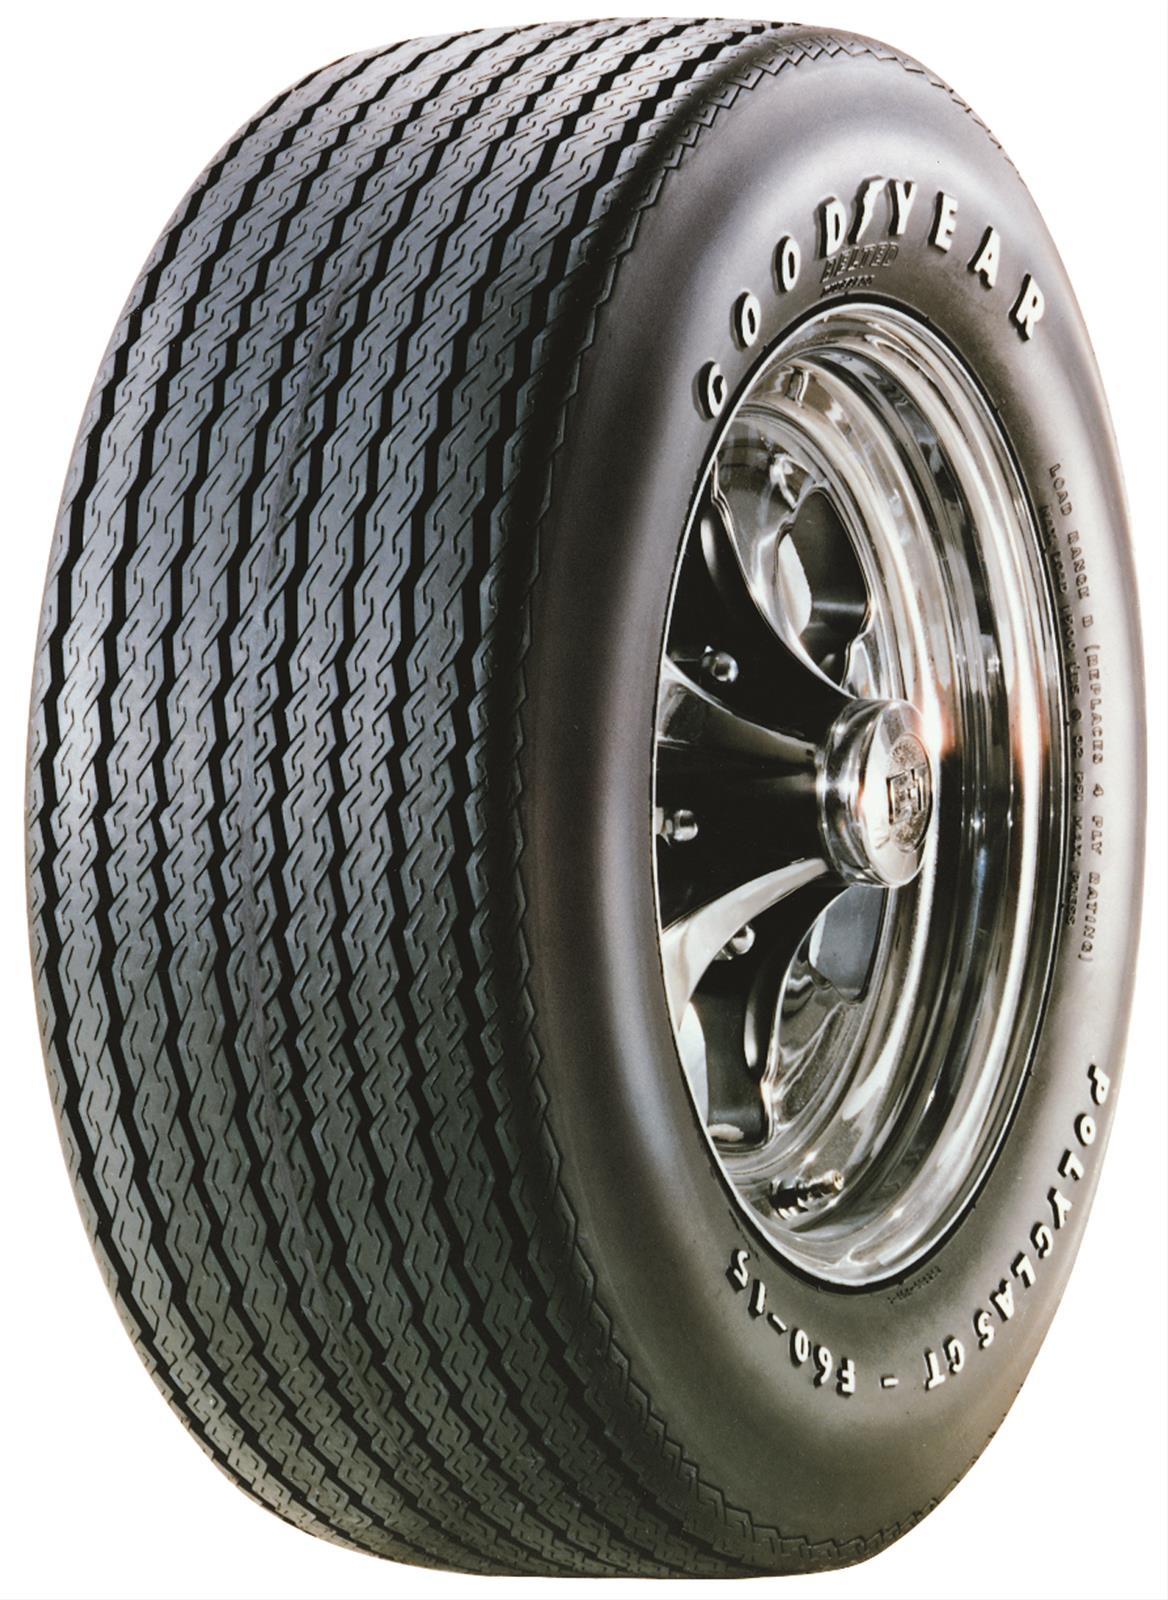 Goodyear Racing Tires >> New at Summit Racing Equipment: Kelsey Tire Goodyear ...